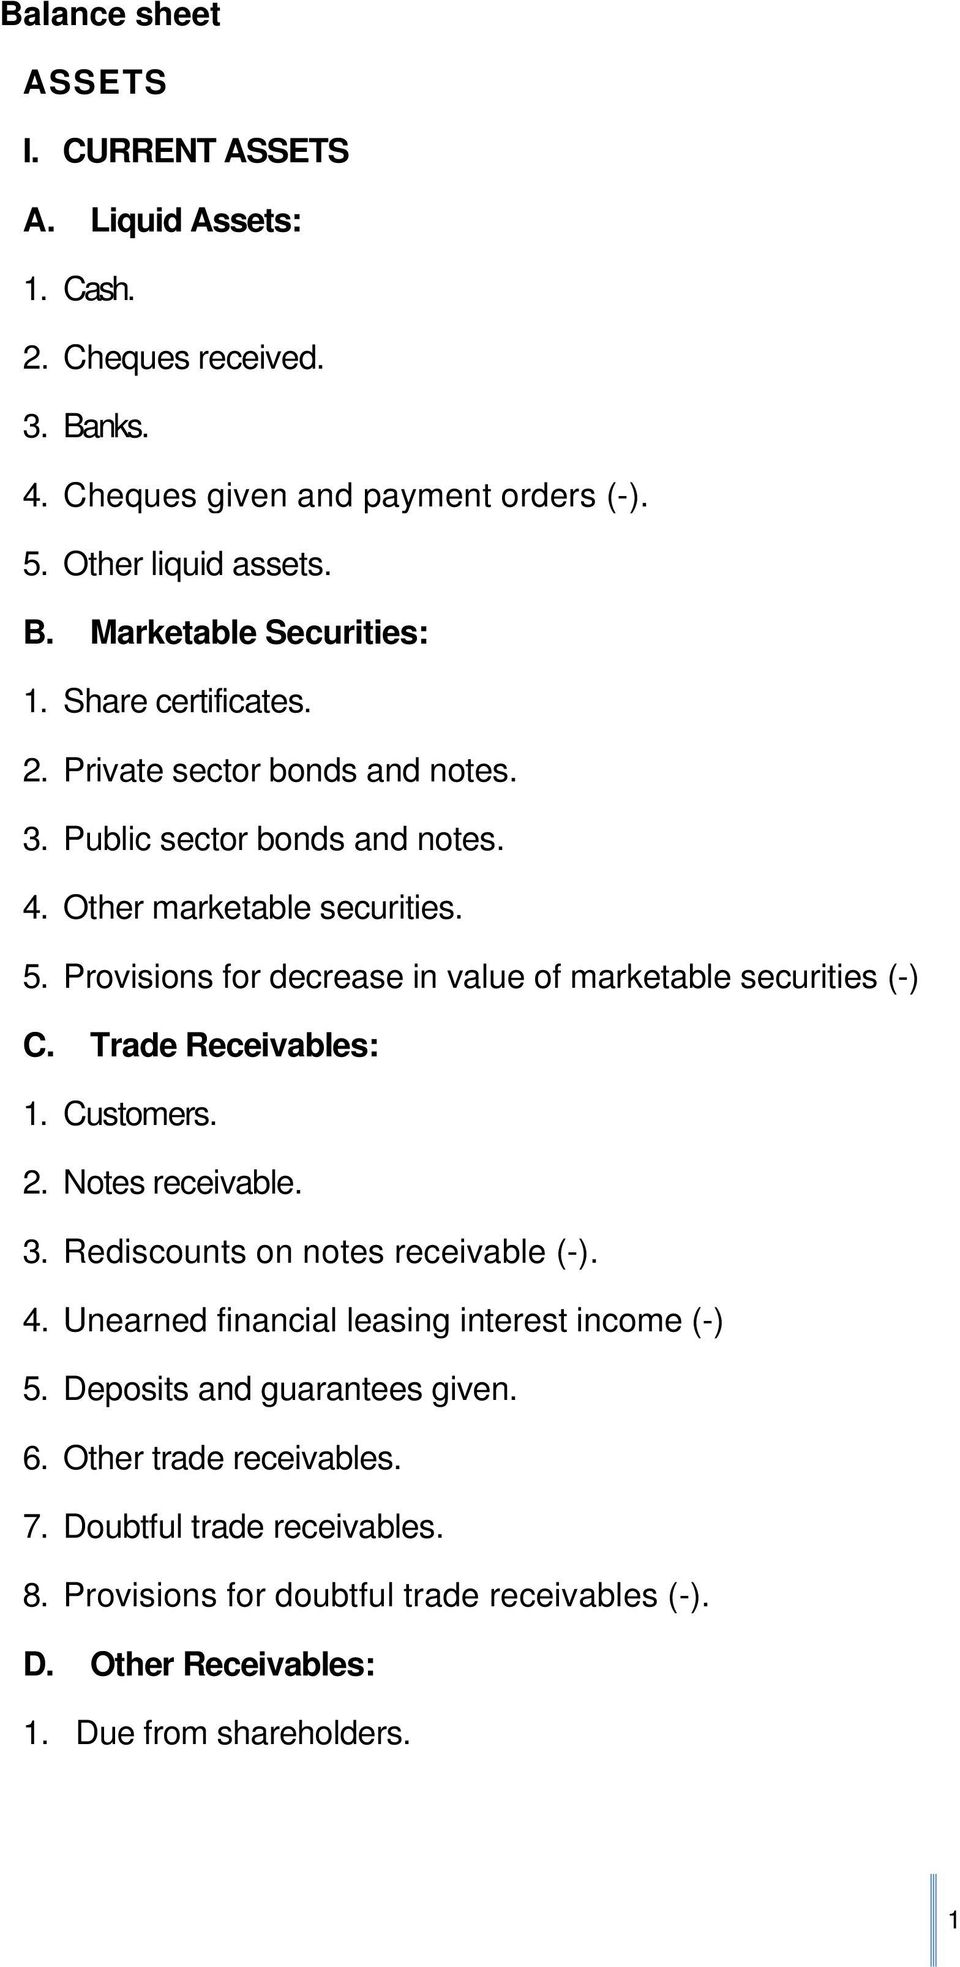 Provisions for decrease in value of marketable securities (-) C. Trade Receivables: 1. Customers. 2. Notes receivable. 3. Rediscounts on notes receivable (-). 4.